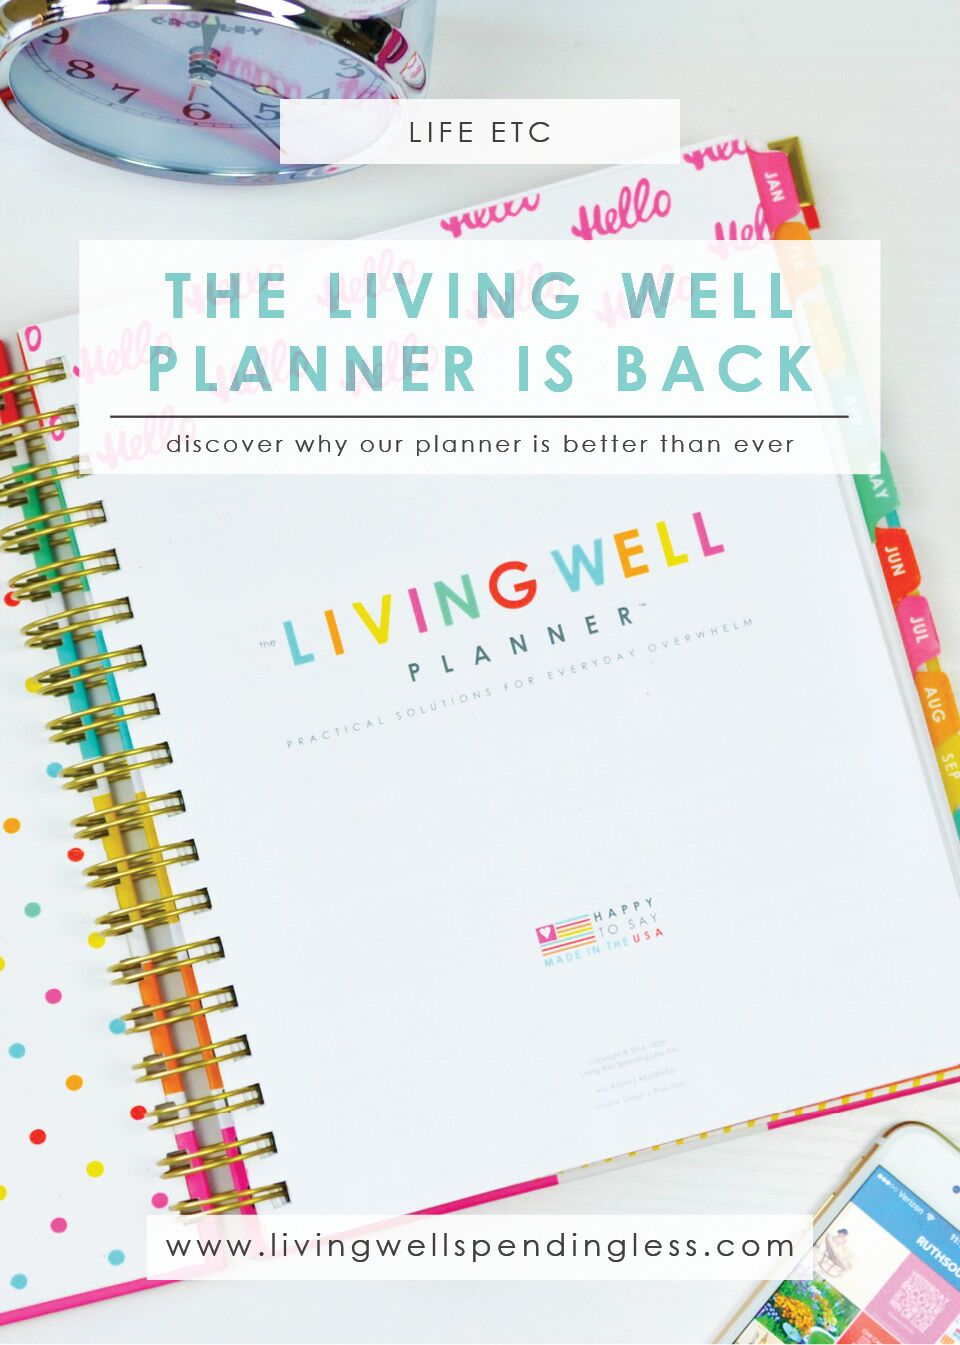 The Living Well Planner is Back: Discover Why Our Planner Is Better Than Ever